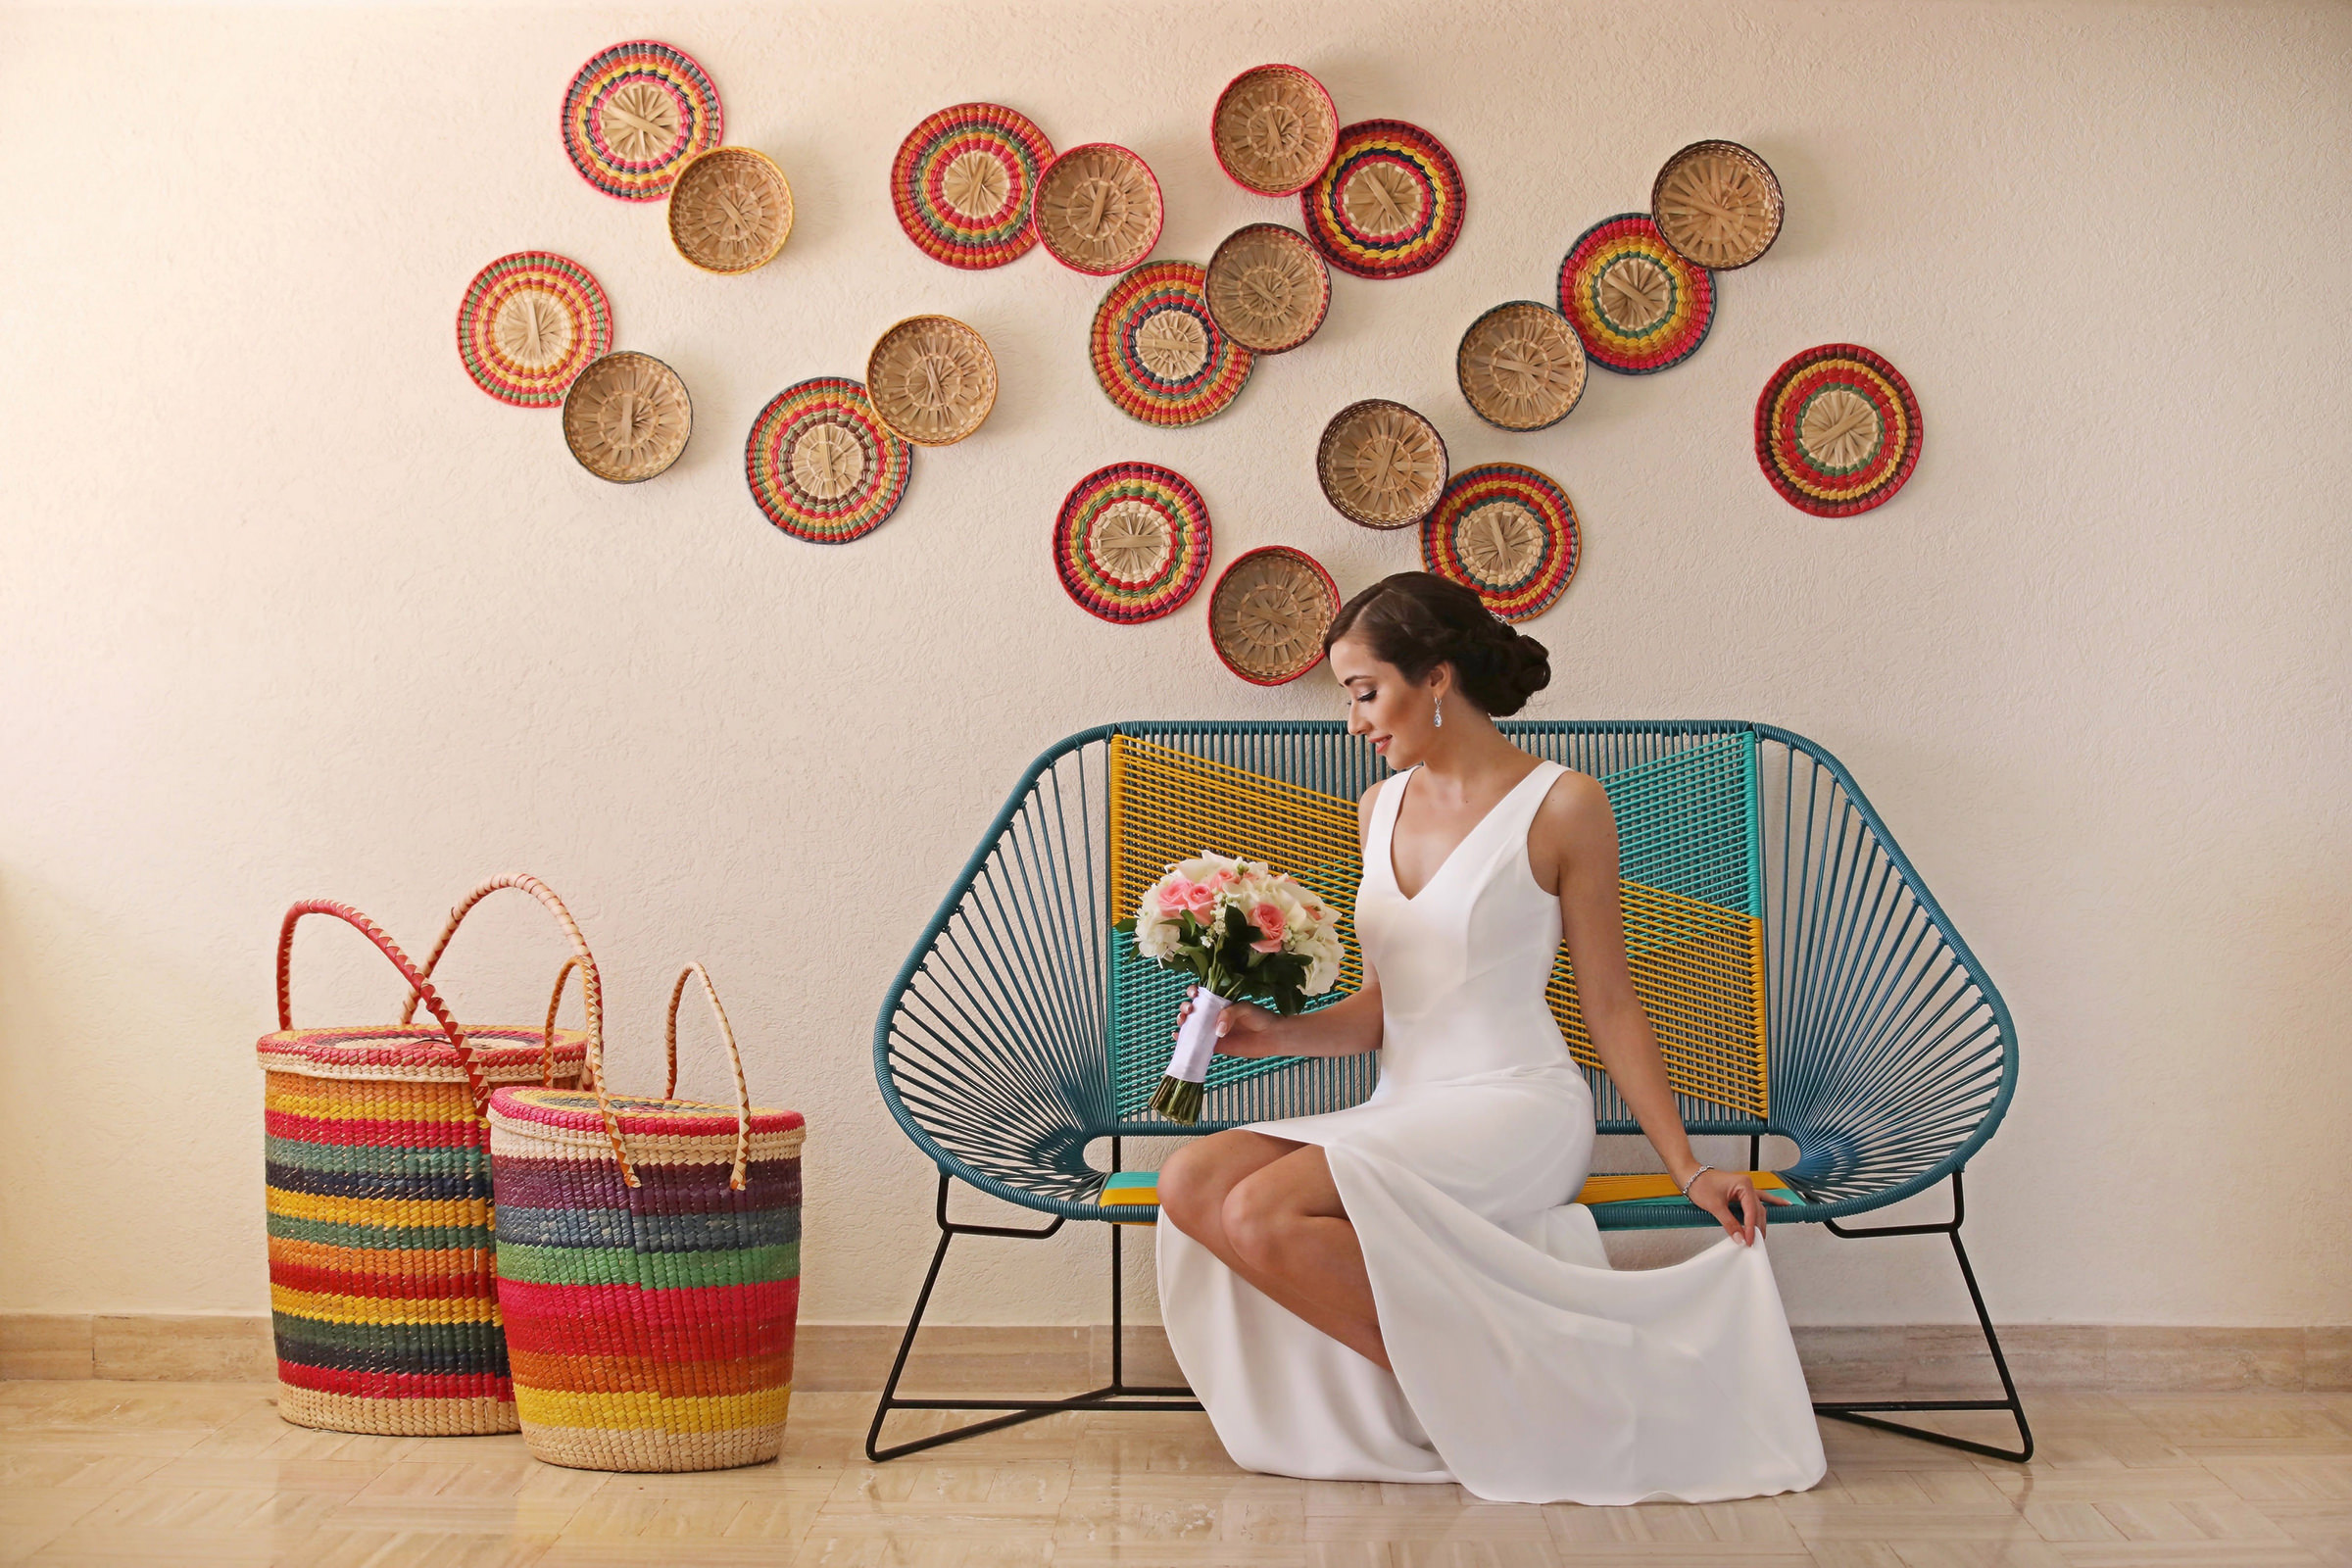 Bride portrait against colorful local basketry - photo by Kenny Kim Photography